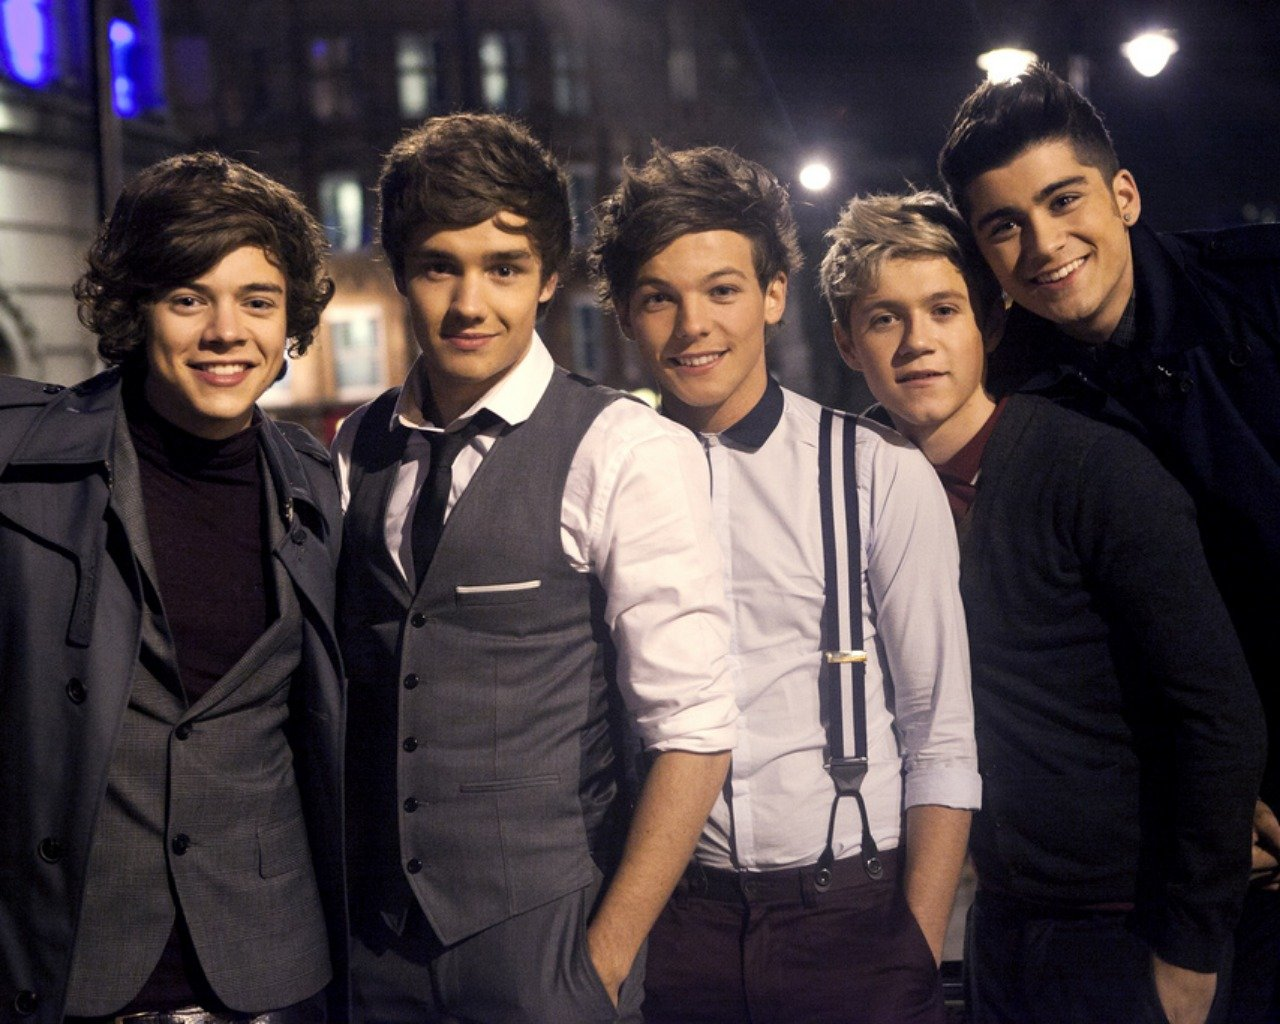 One direction wallpaper in high resolution for Get One direction 1280x1024